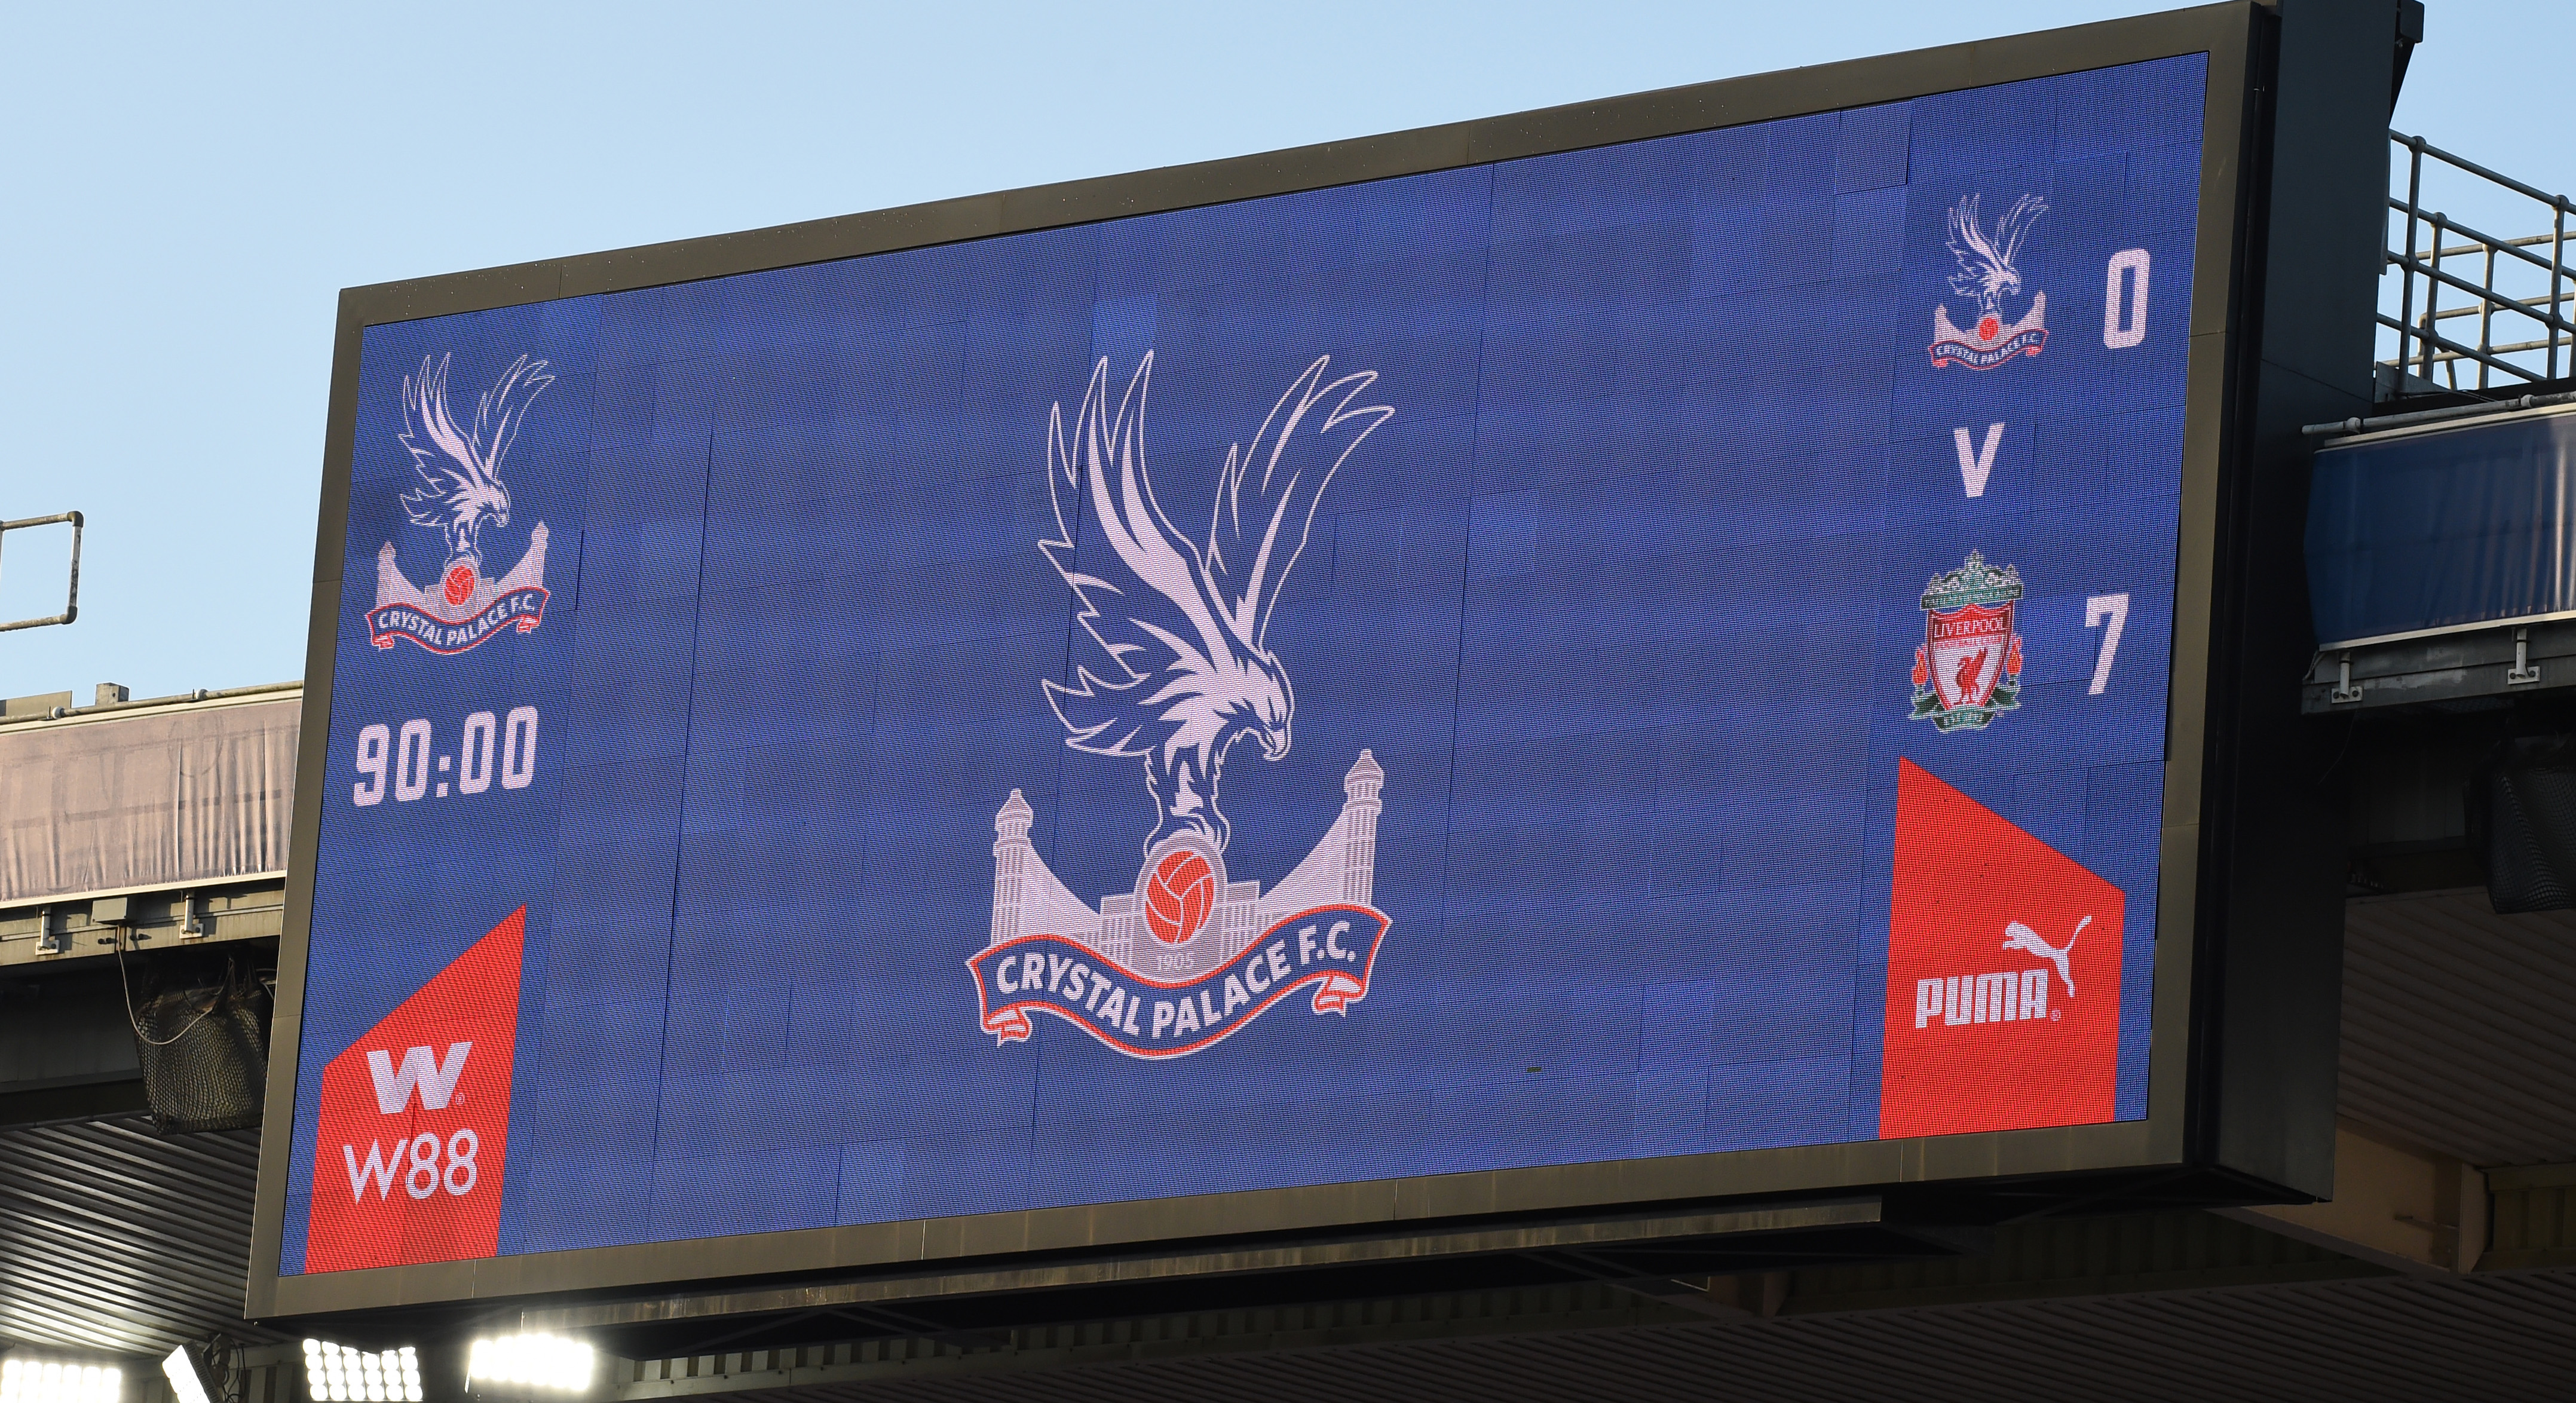 LONDON, ENGLAND - DECEMBER 19:  (THE SUN OUT,THE SUN ON SUNDAY OUT)  Final Score Board  showing 7-0 for Liverpool during the Premier League match between Crystal Palace and Liverpool at Selhurst Park on December 19, 2020 in London, England. The match will be played without fans, behind closed doors as a Covid-19 precaution. (Photo by John Powell/Liverpool FC via Getty Images)